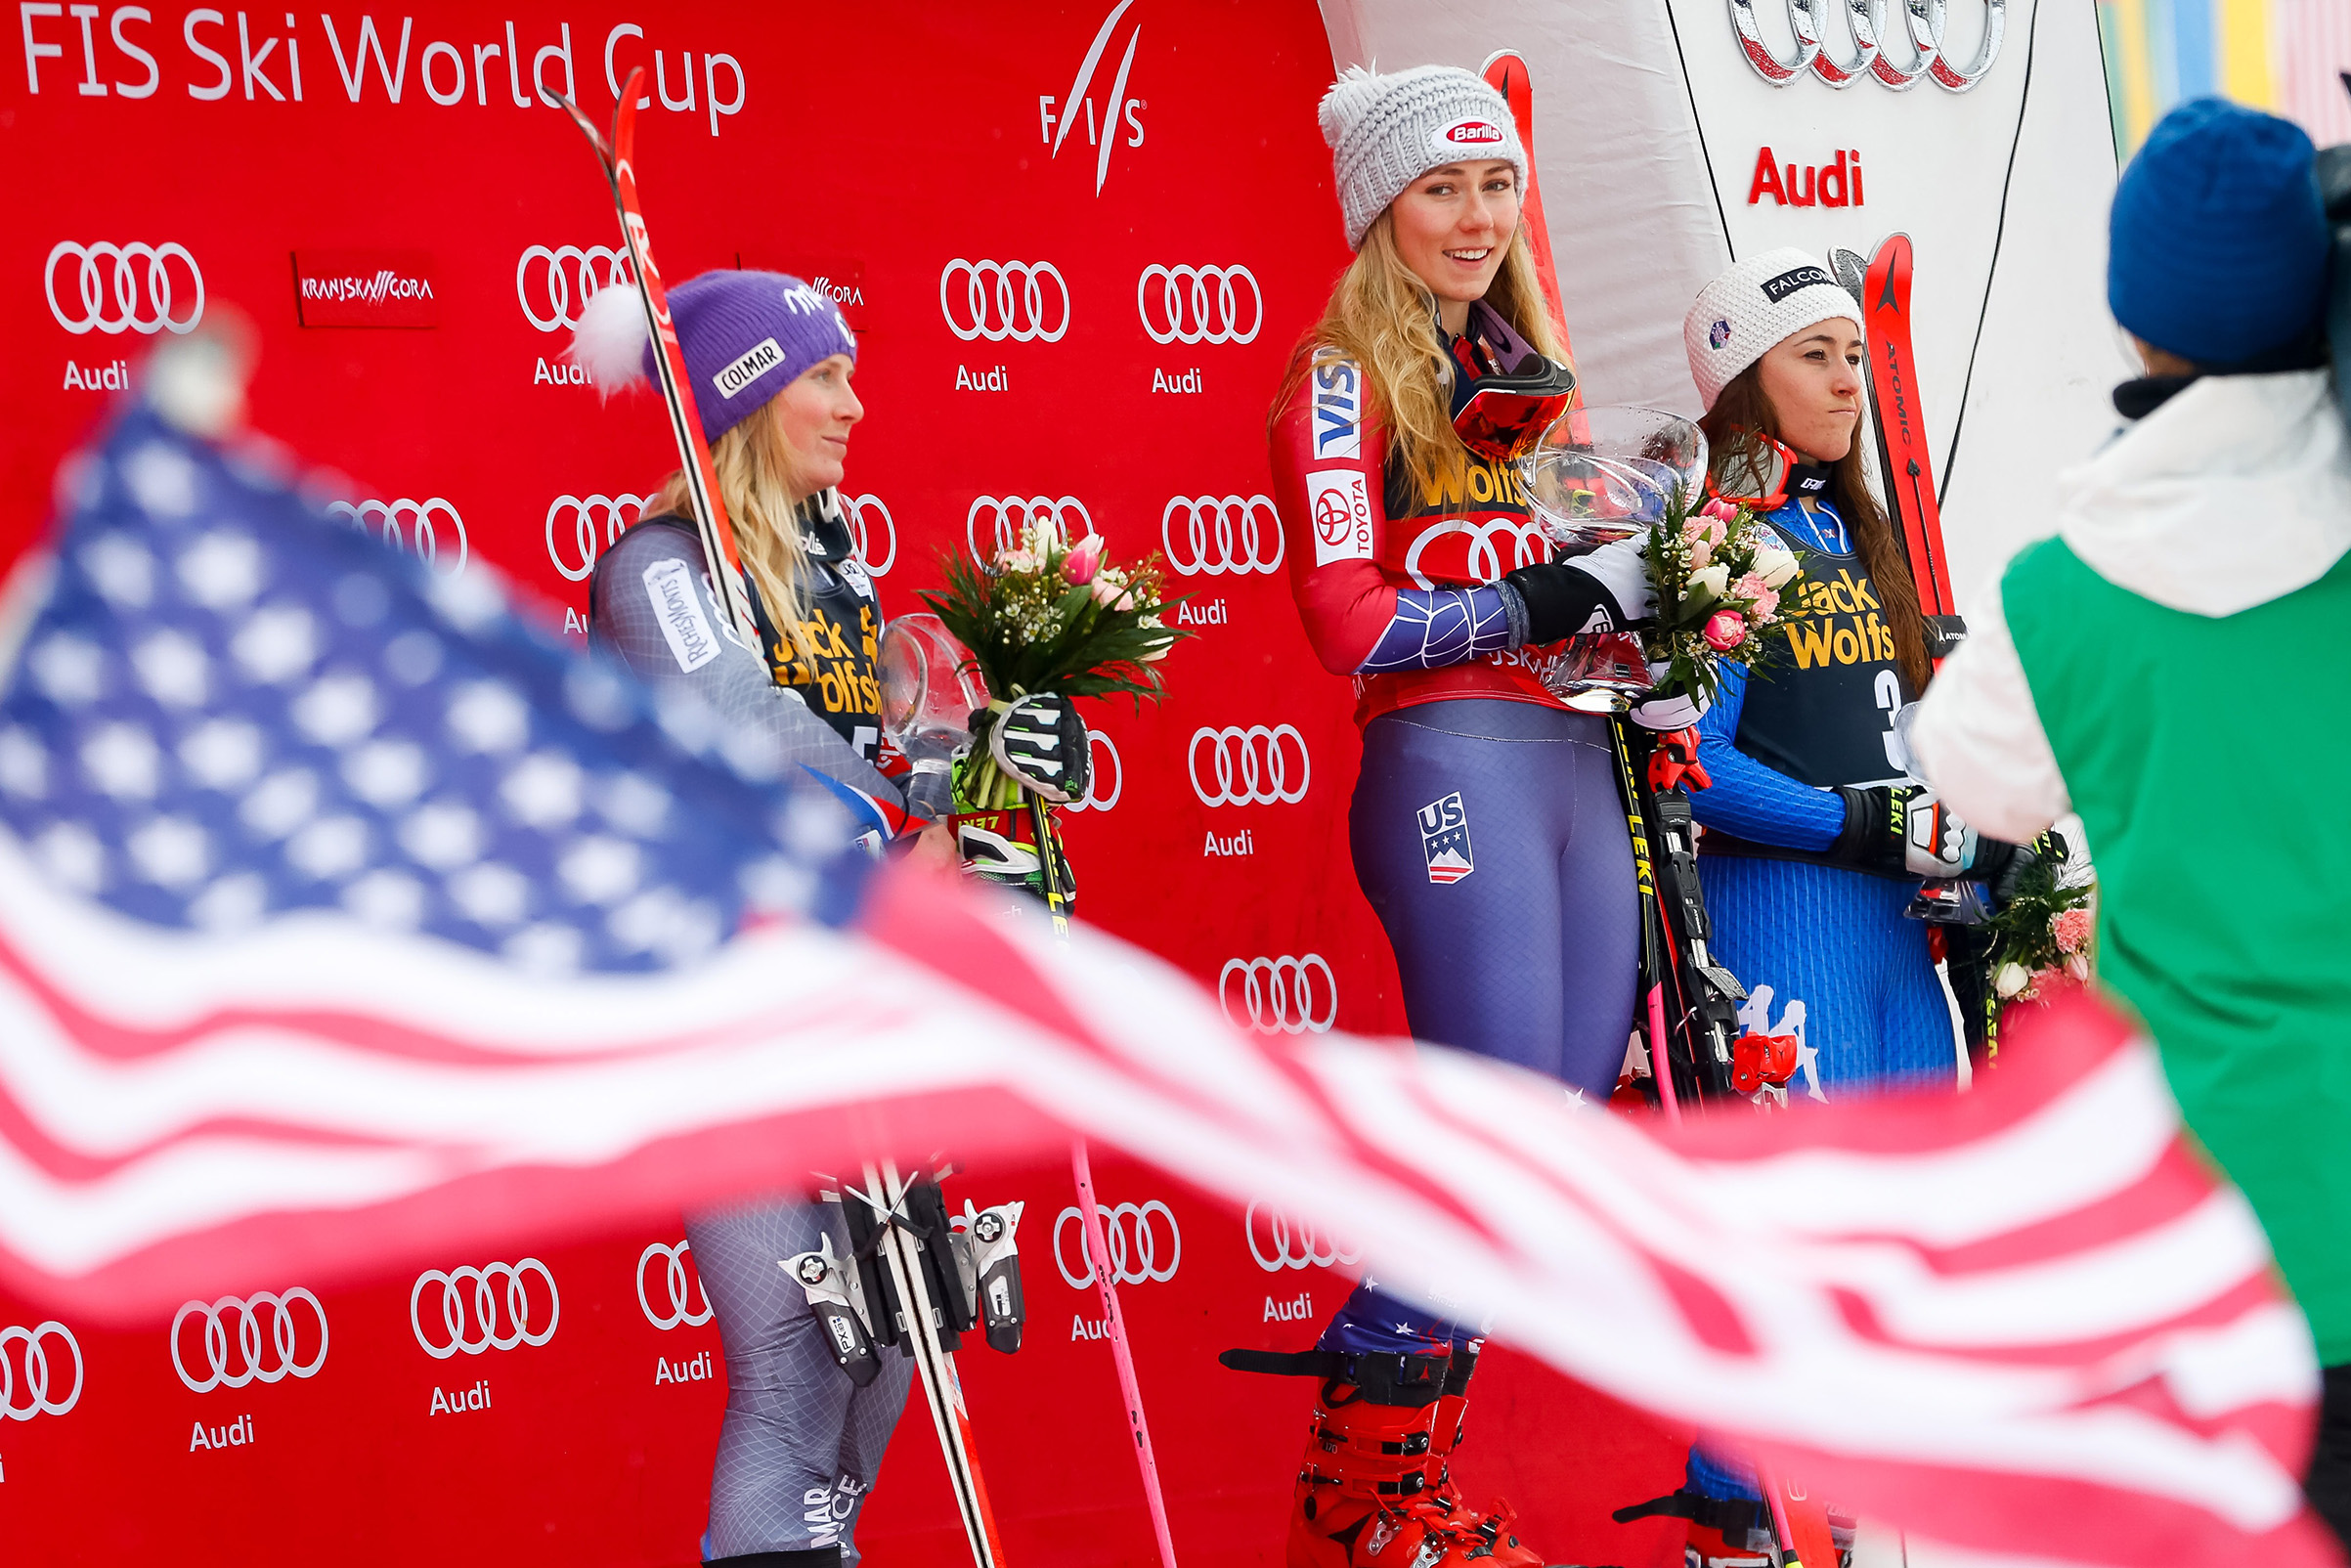 Shiffrin atop the podium at the World Cup giant-slalom race in Kranjska Gora, Slovenia, on Jan. 6